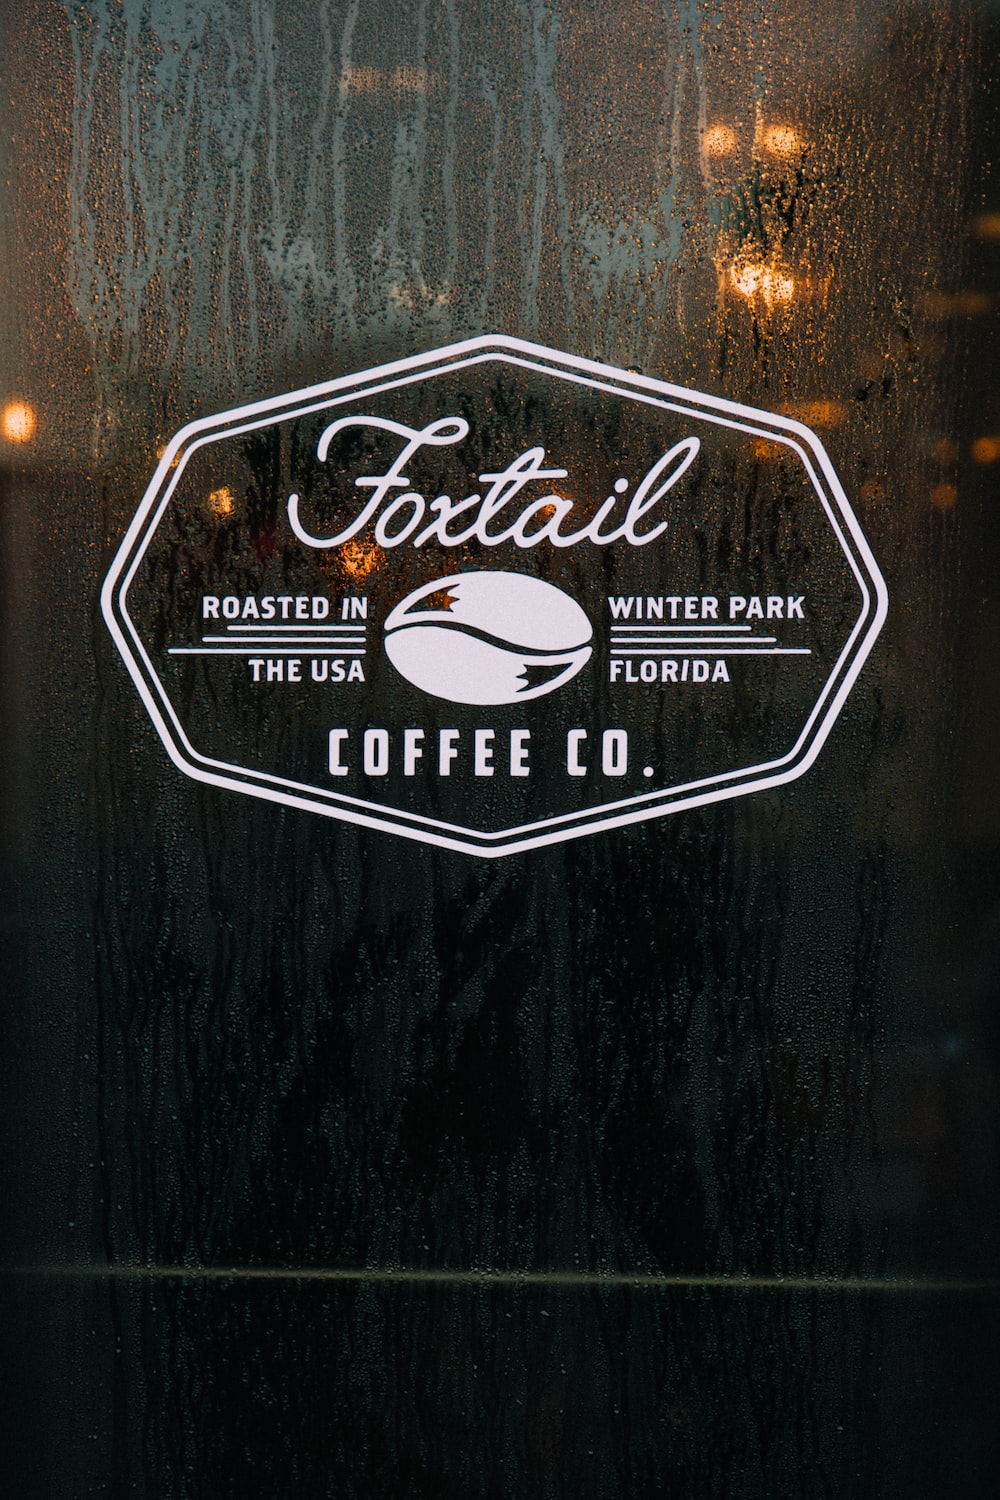 person showing Foxtail logo